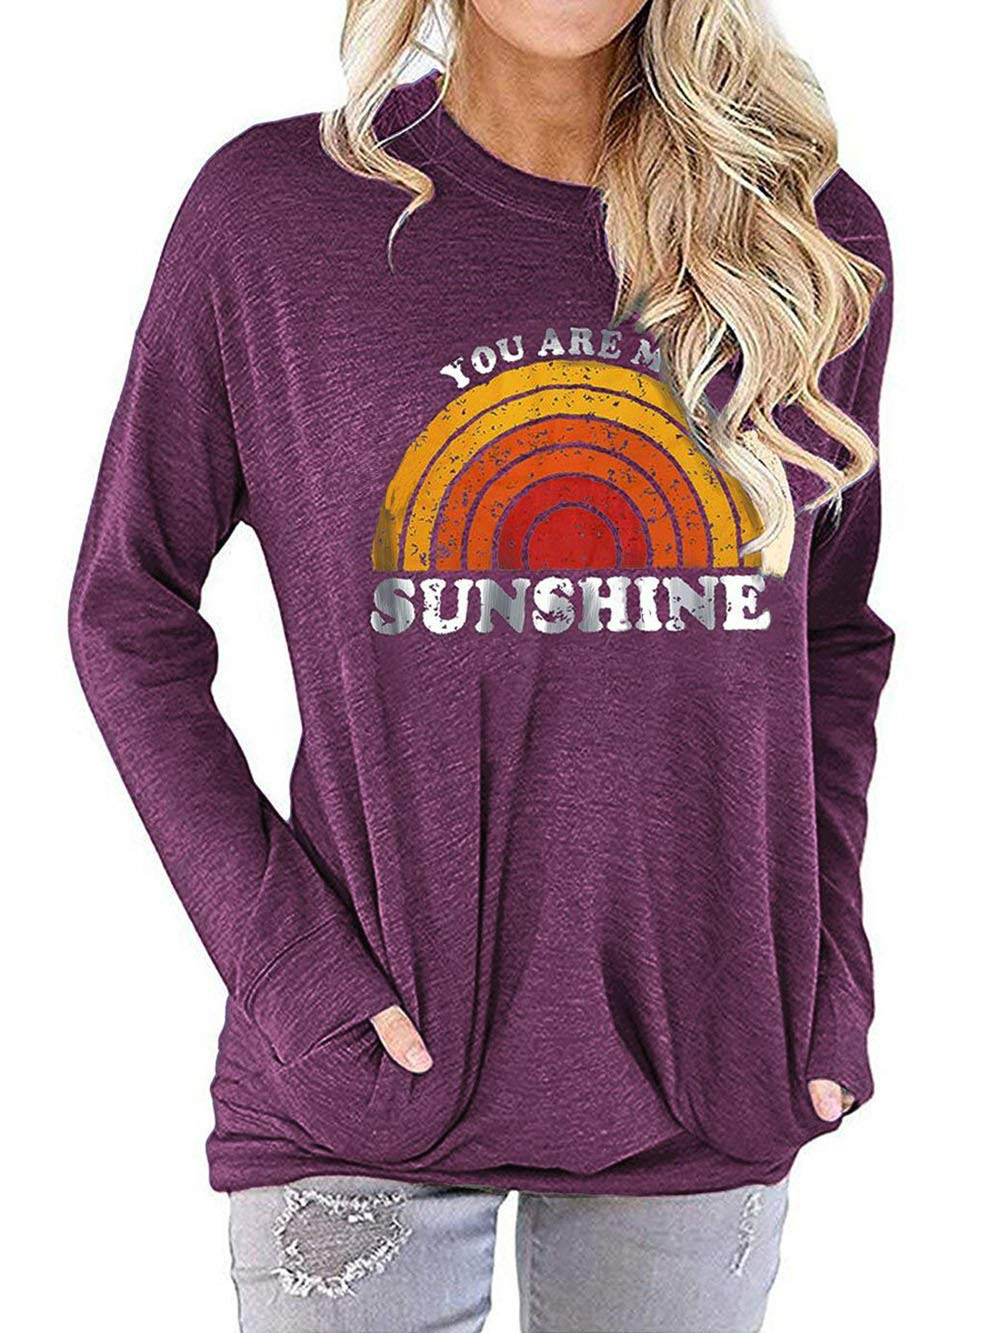 YASAKO Casual Graphic Sweatshirt for Women with Pocket Comfy Fit Lightweight Pullover Tee Shirts Letter Print Tops,B-WineRed,L